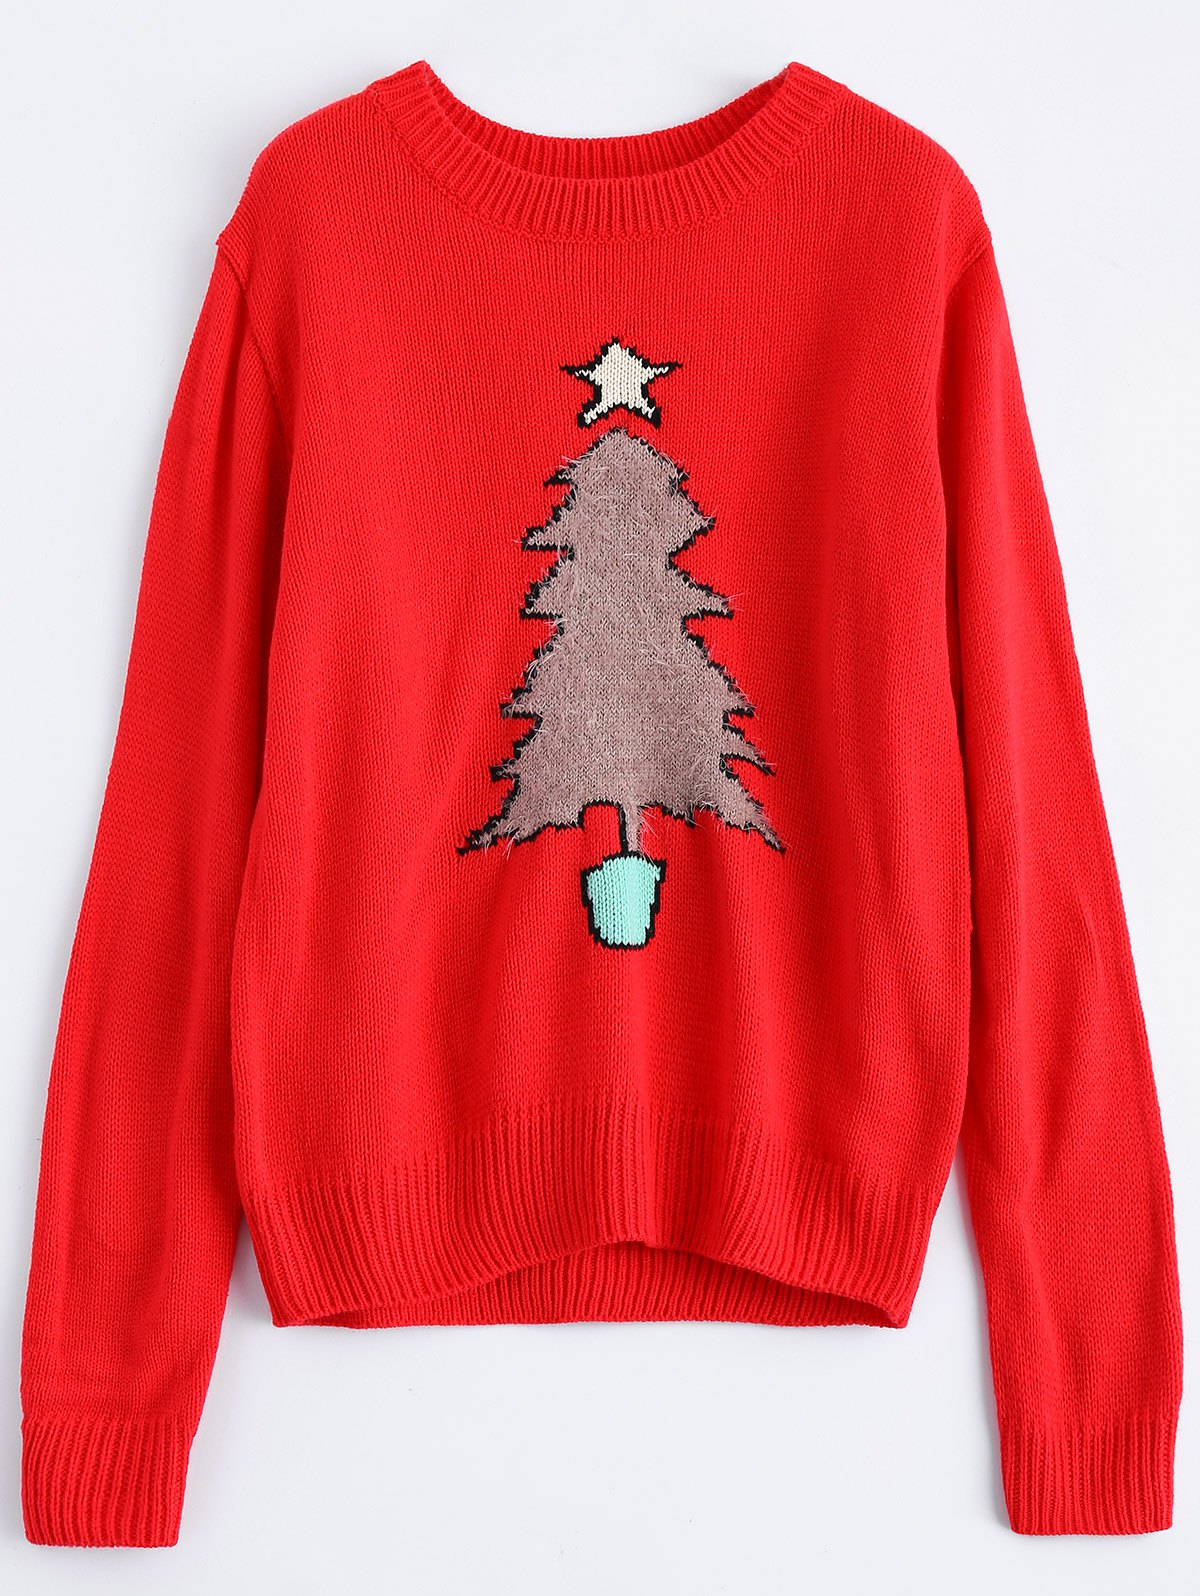 Christmas Tree Jacquard Pullover SweaterClothes<br><br><br>Size: XL<br>Color: RED